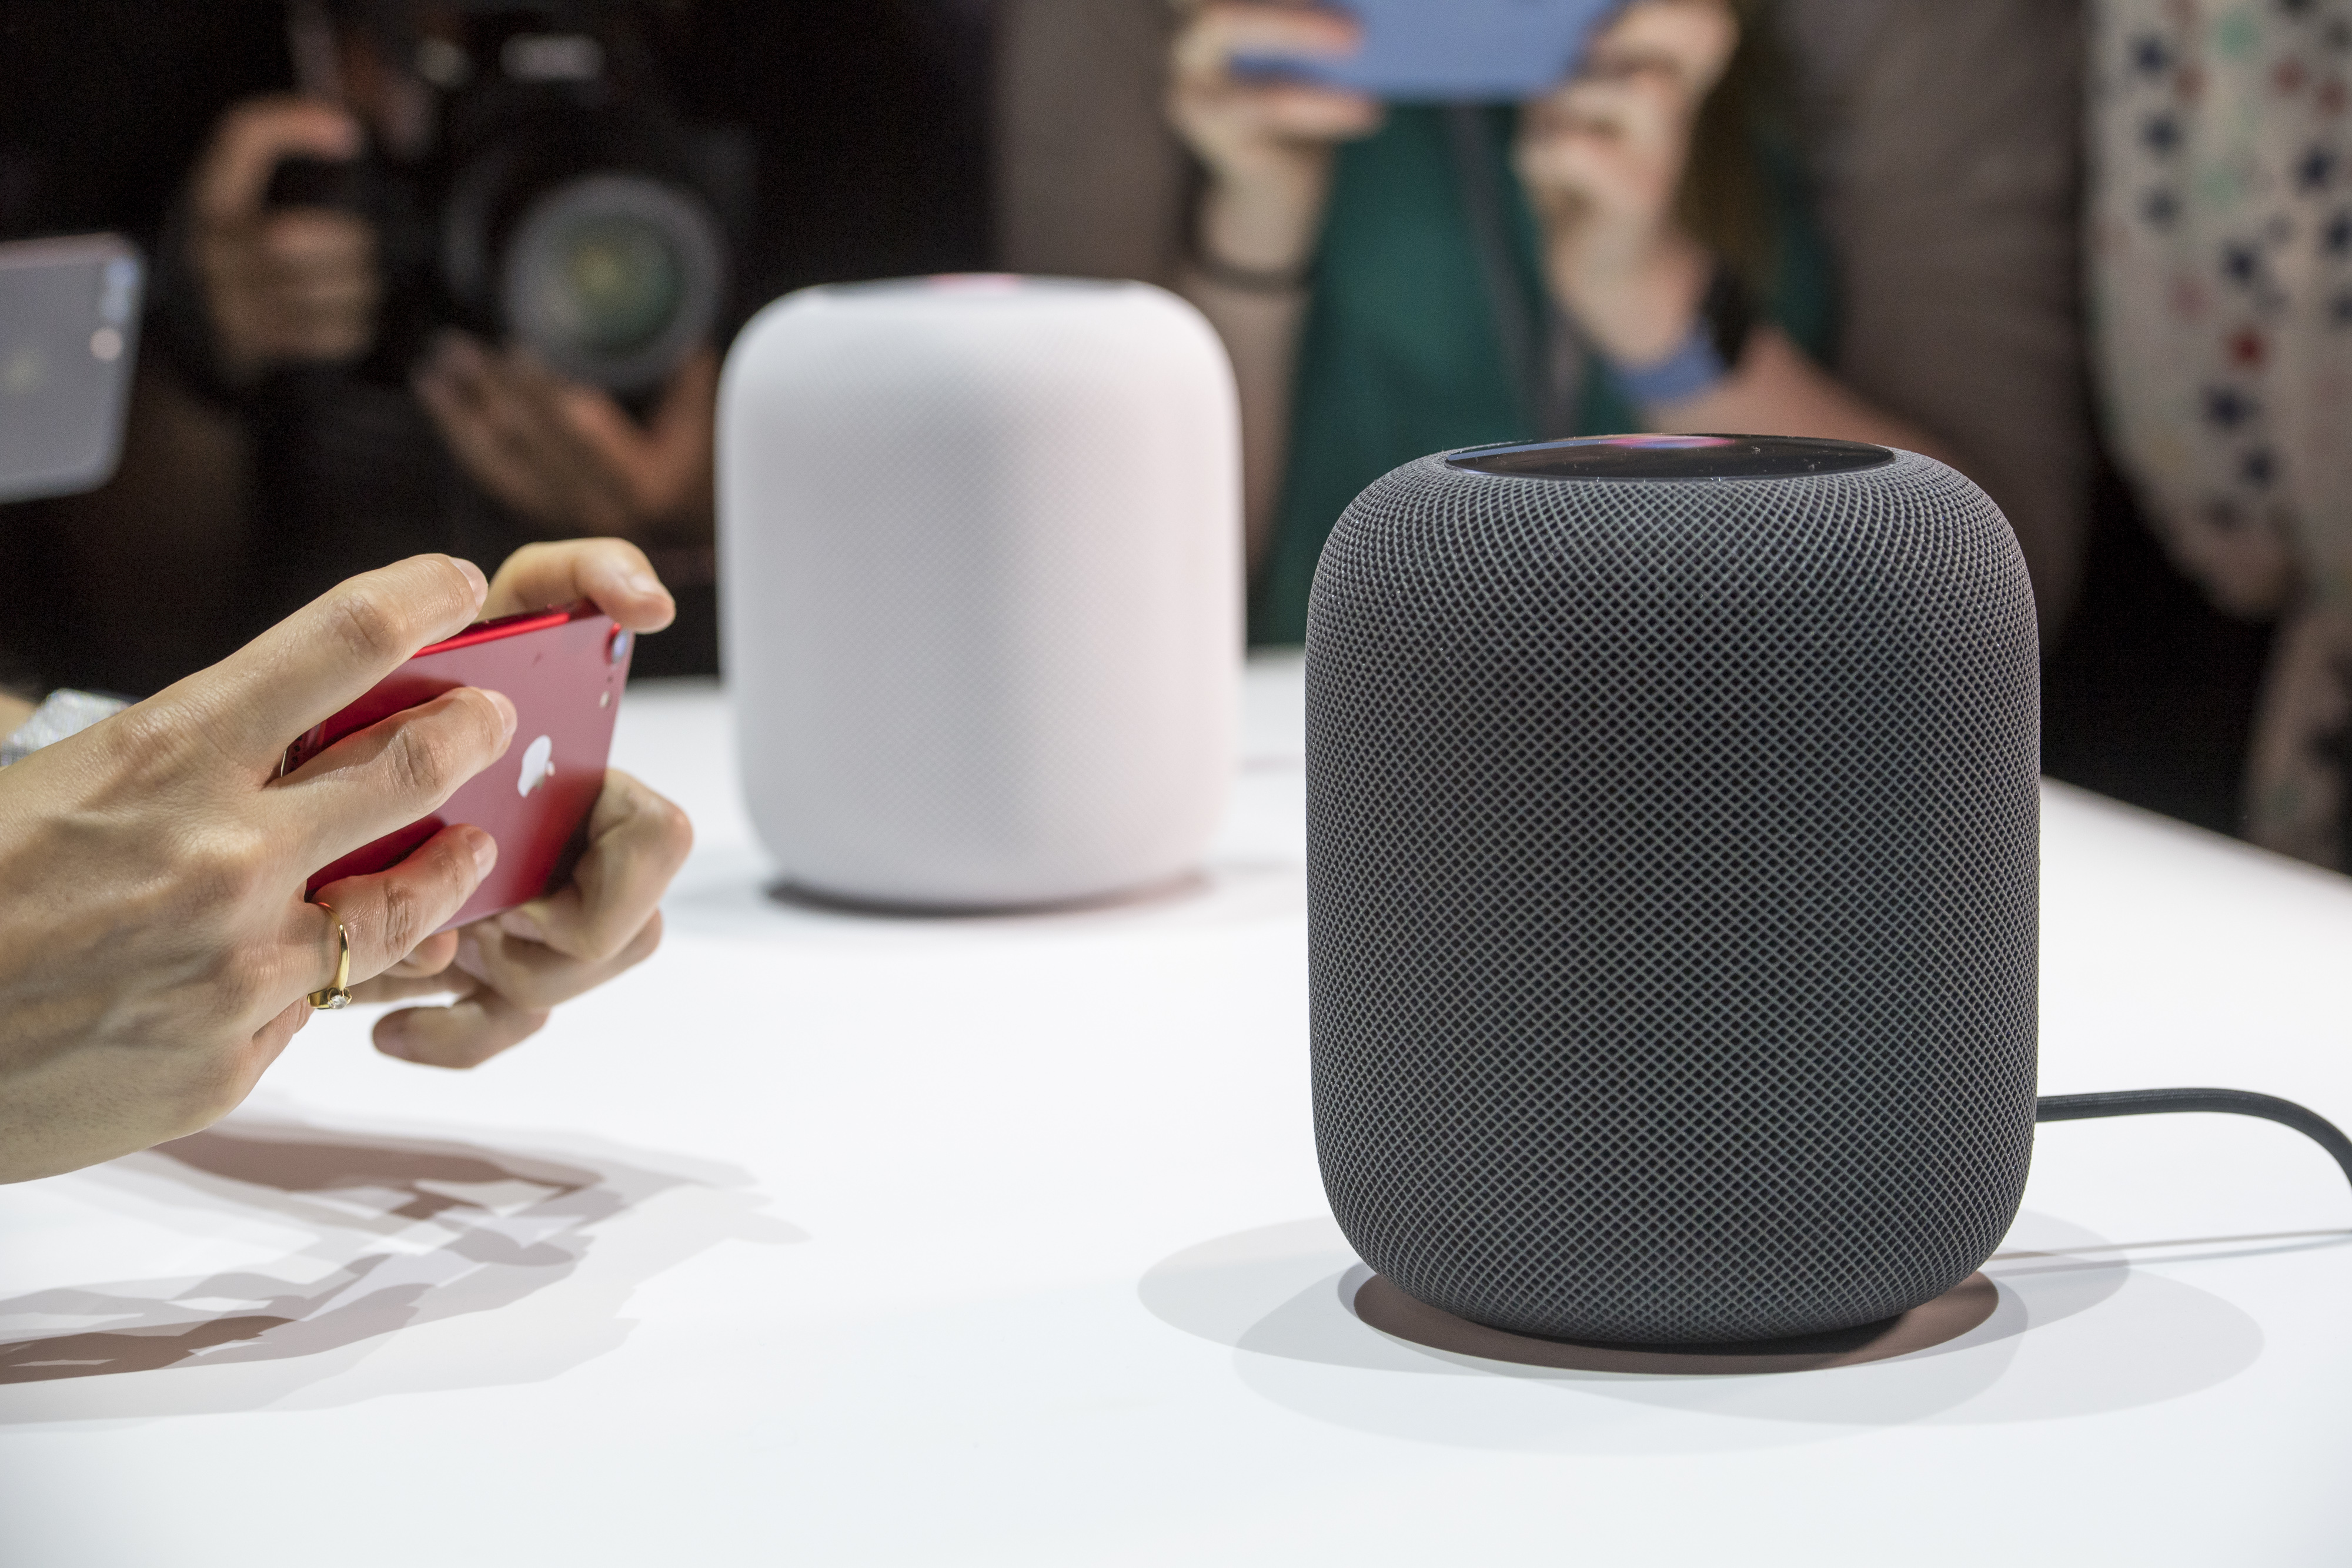 Should You Buy the Apple HomePod?